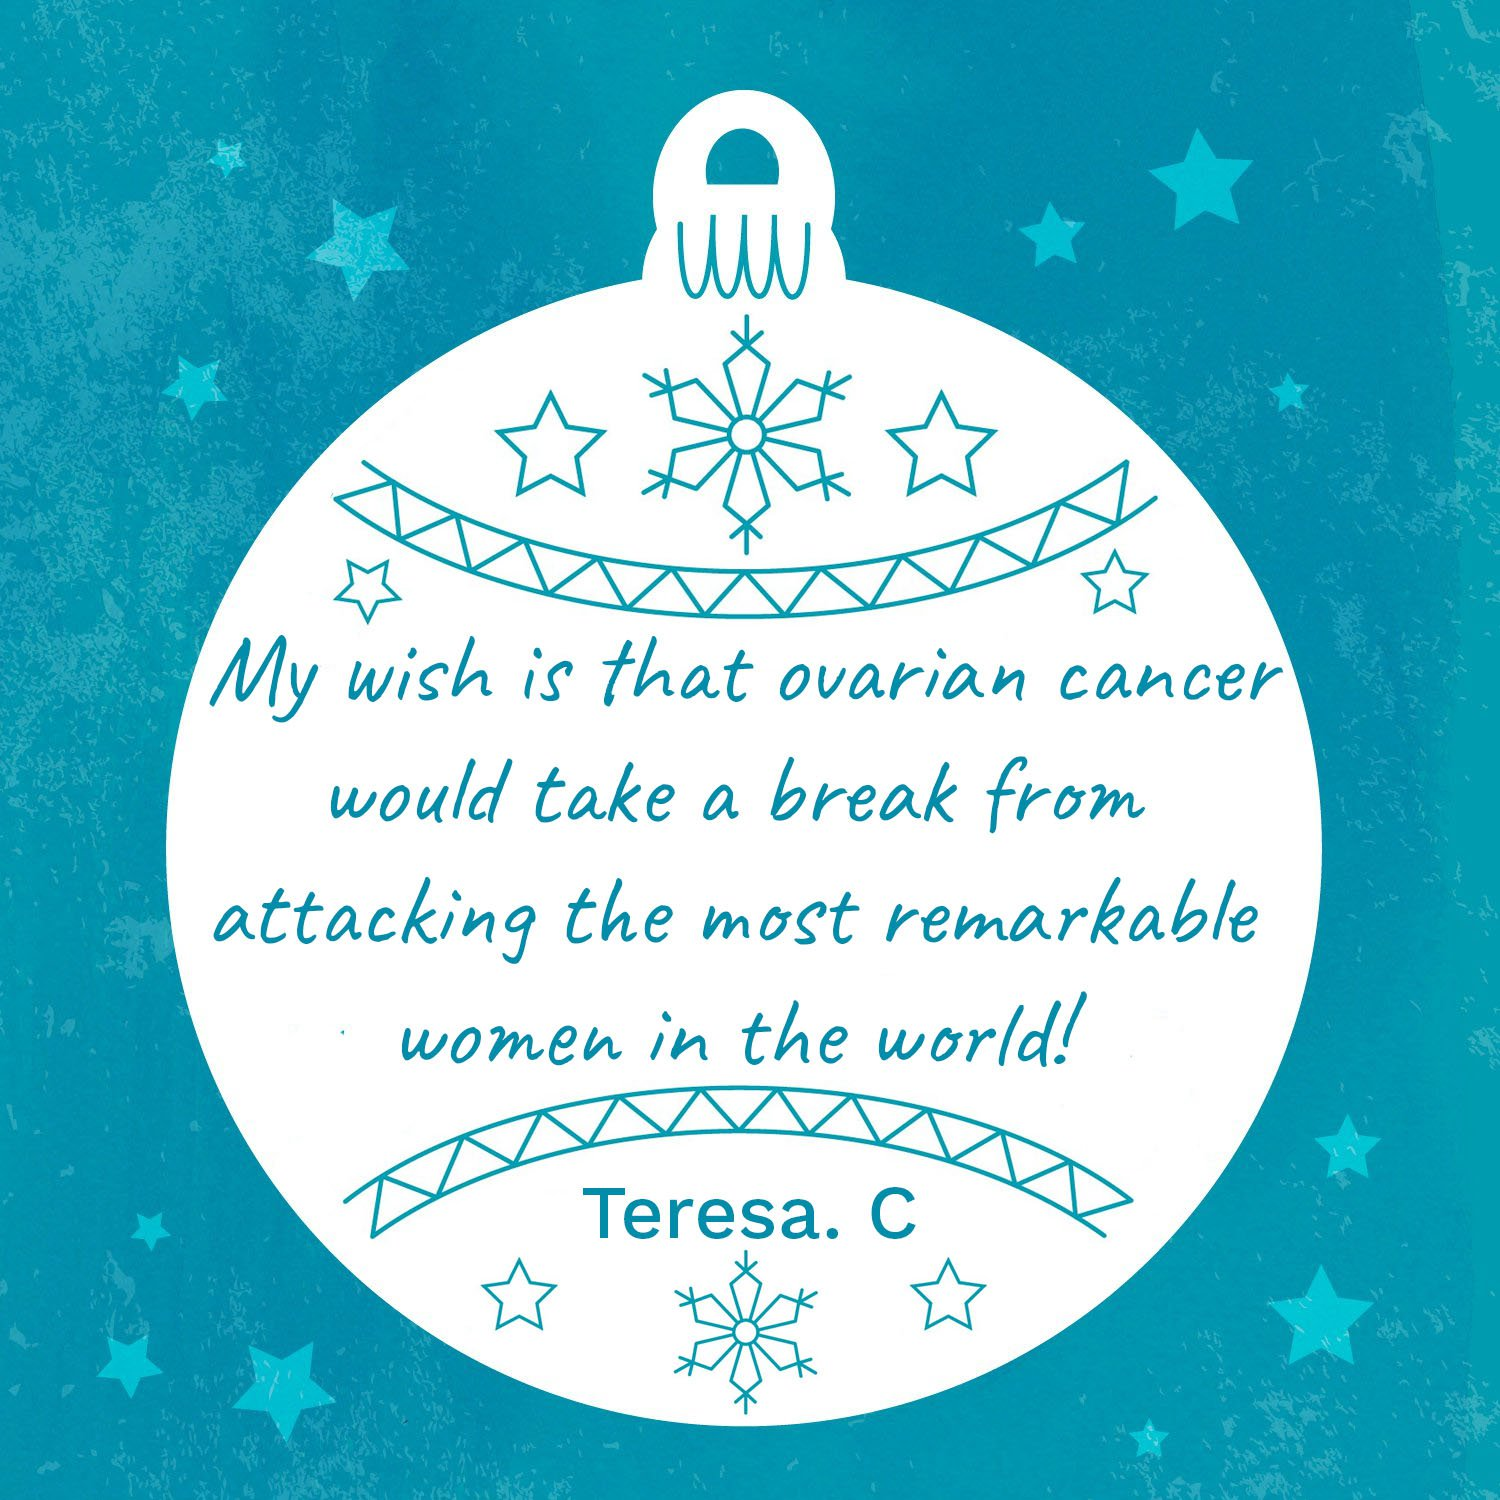 Teresa's Wish For Ovarian Cancer